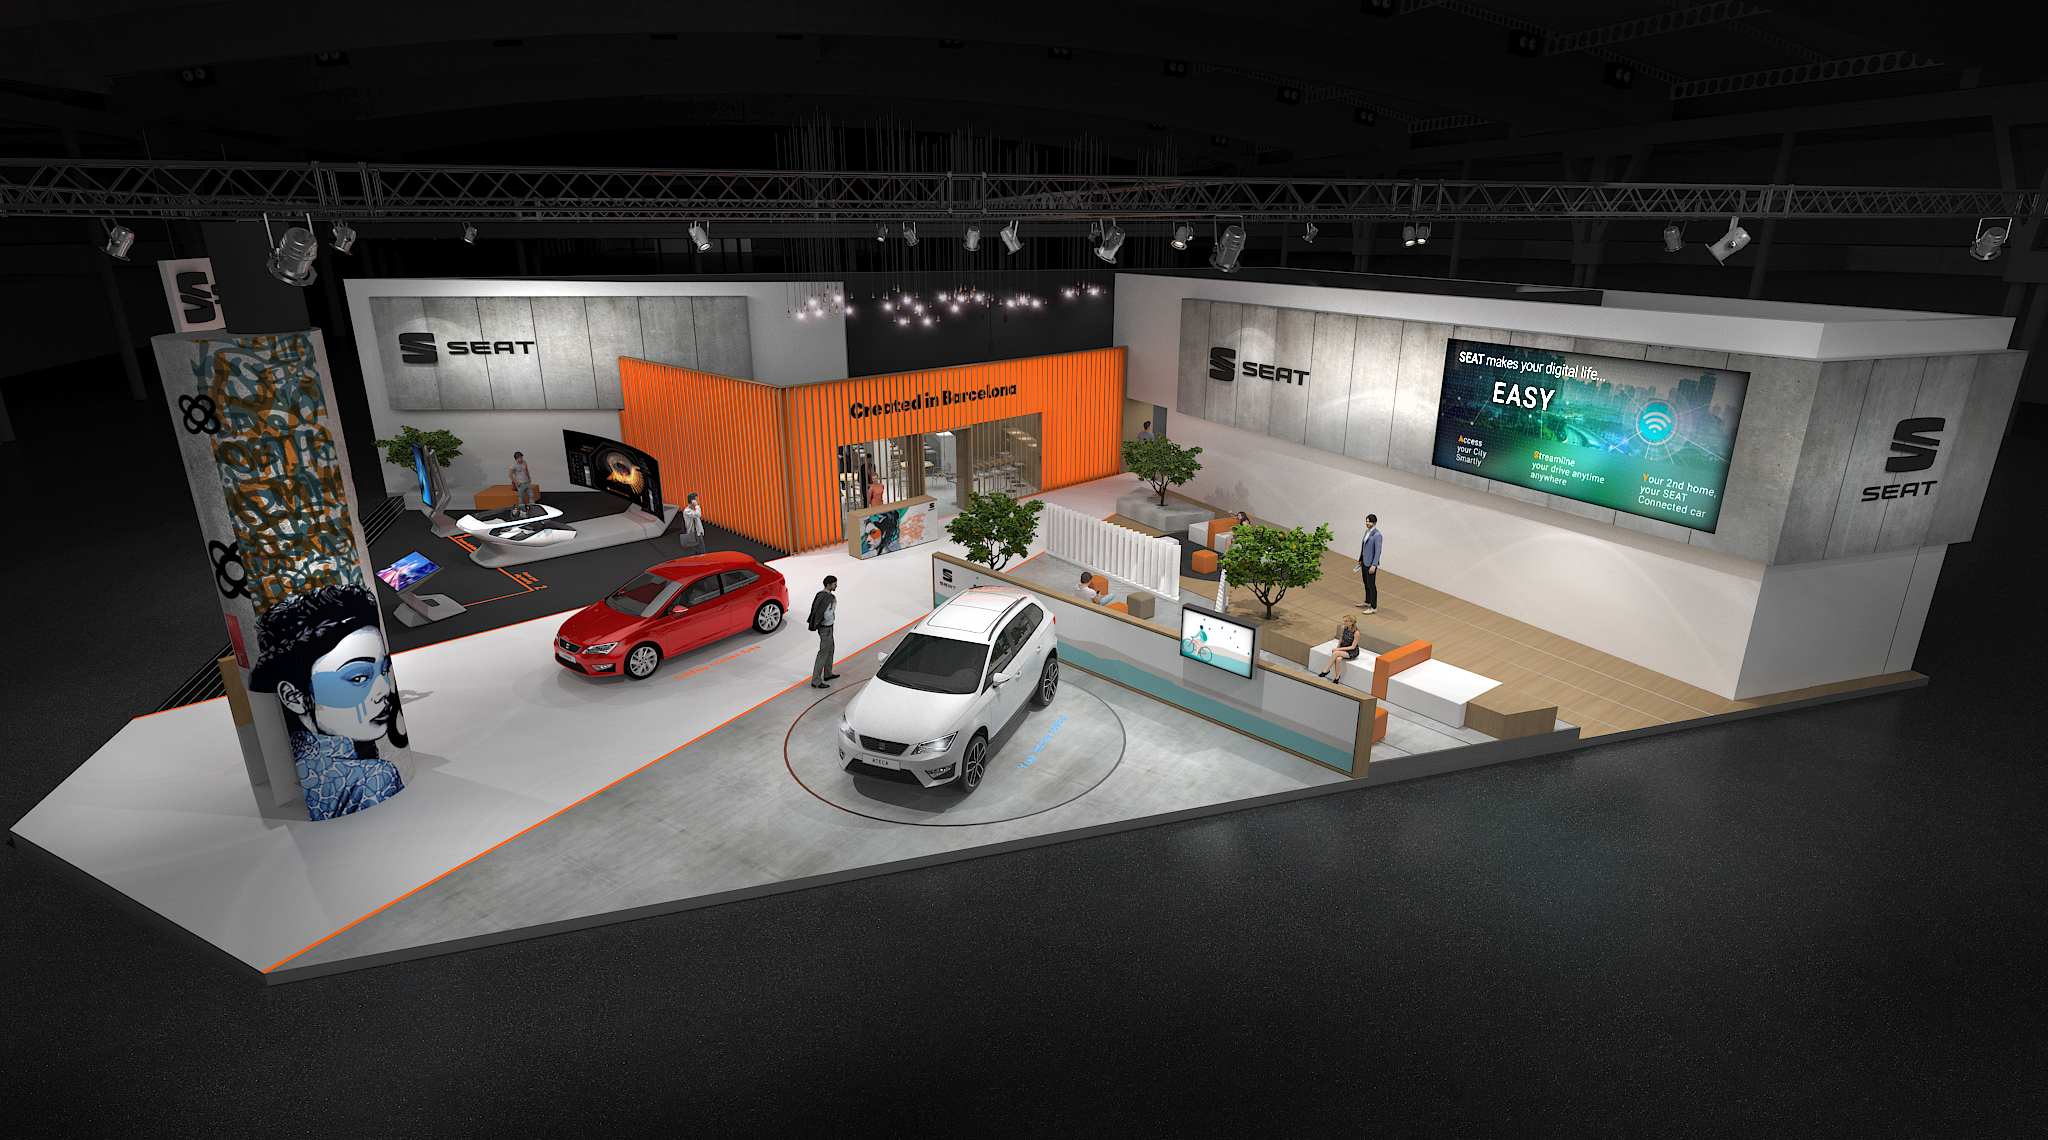 Seat desvenda o presente e o futuro do automóvel no Mobile World Congress